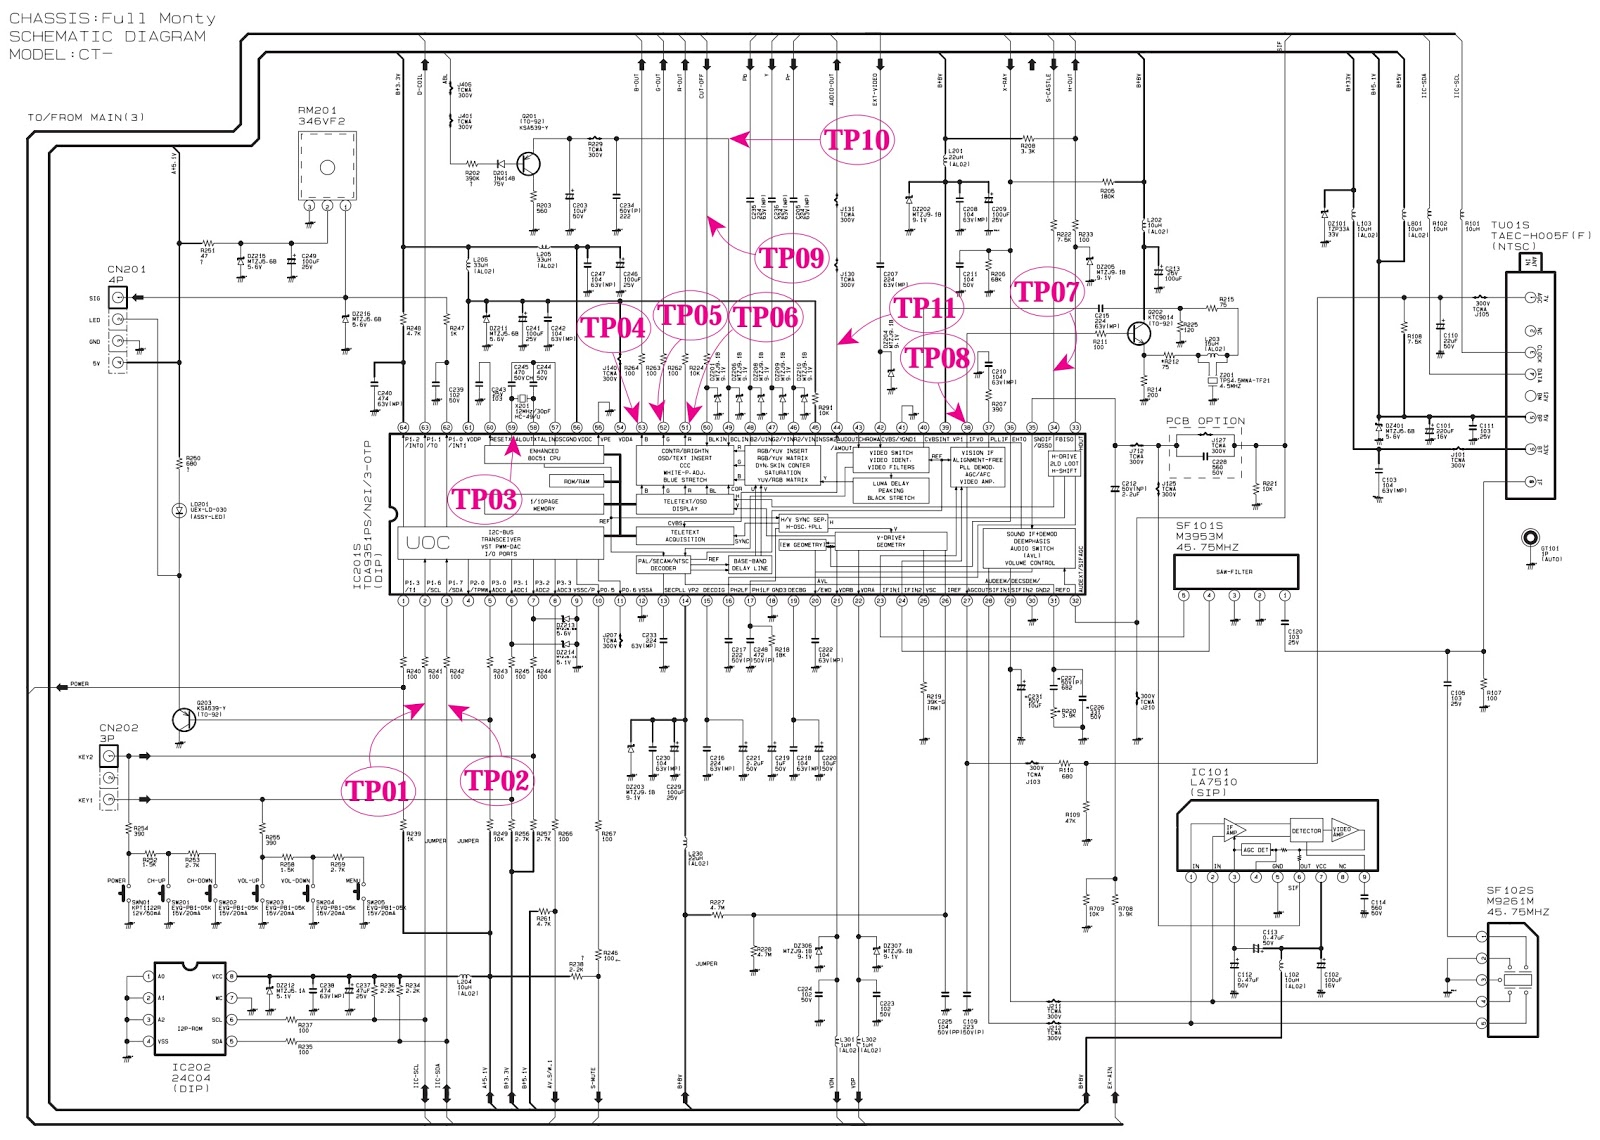 Samsung%2BCL21N11%2Bcrt%2Btv%2Bcircuit%2Bdiagram 1 samsung tv wiring diagram dvd to tv hookup diagrams \u2022 wiring  at eliteediting.co